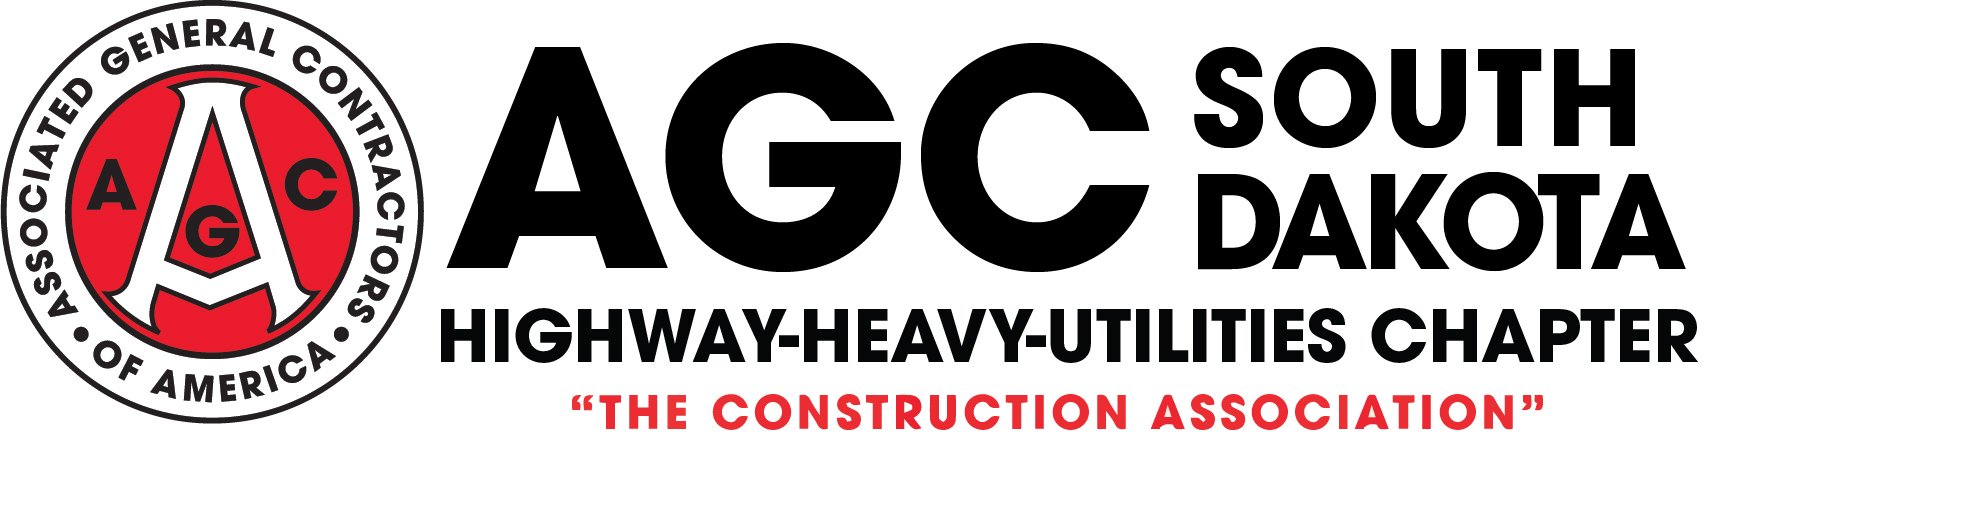 Agc Sd Hhu New Logo W Tag Line